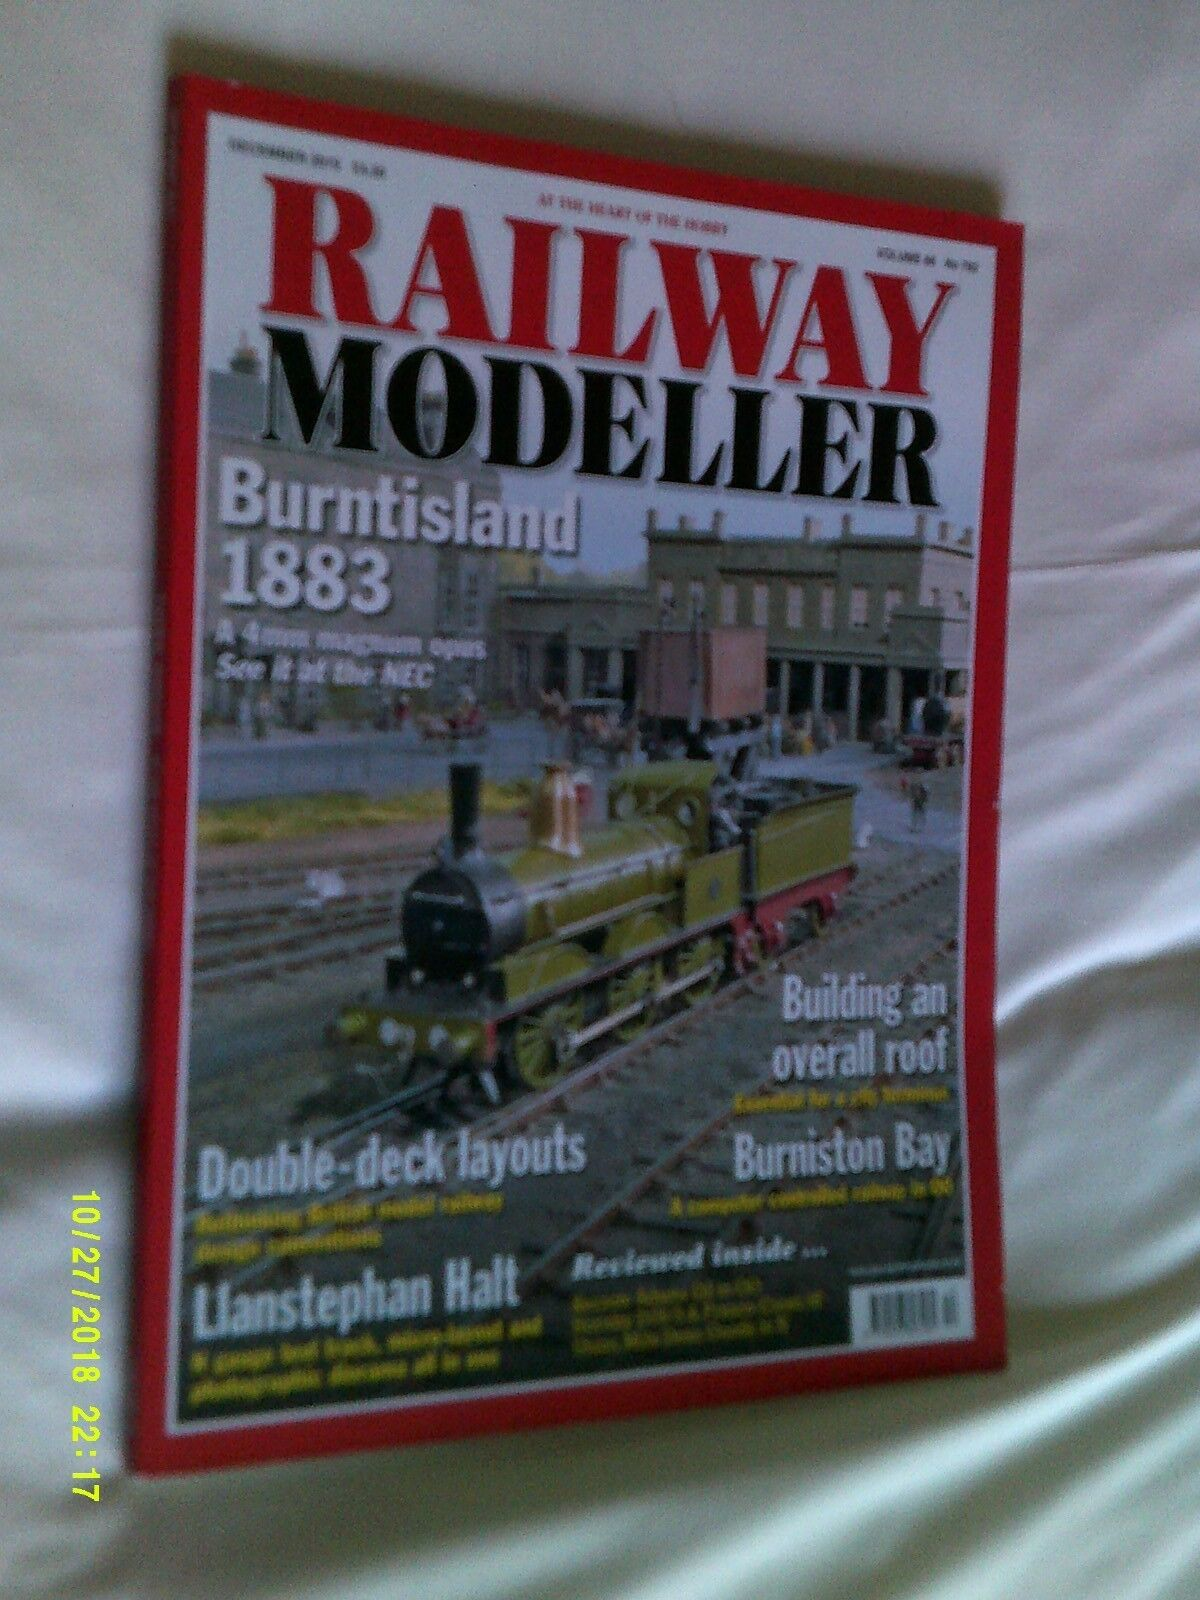 Railway Modeller December 2015 Volume 66 No. 782